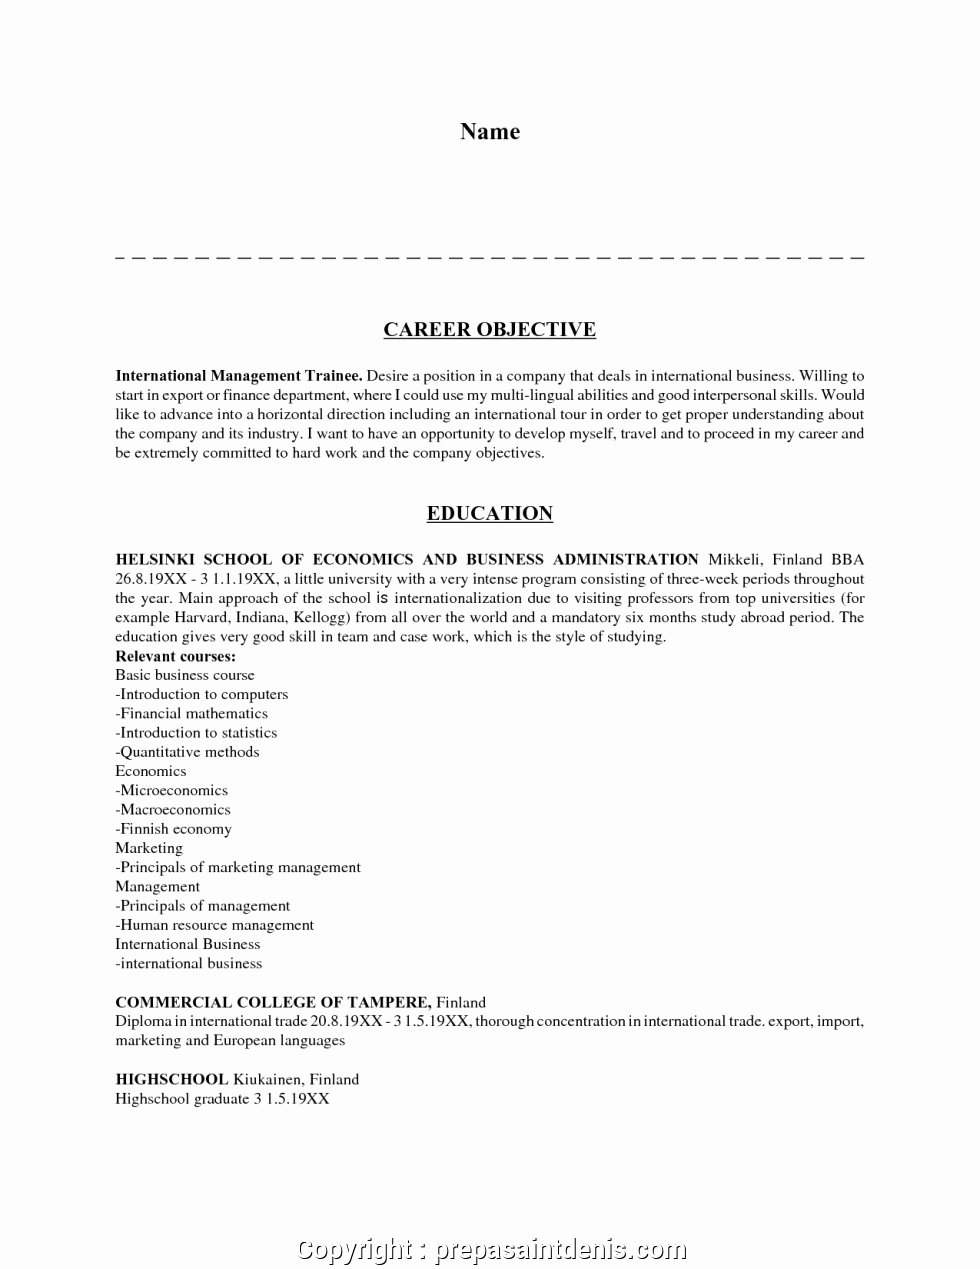 Simple Objective for Resume Luxury New Objective for A Case Manager Resume Best Ideas Case